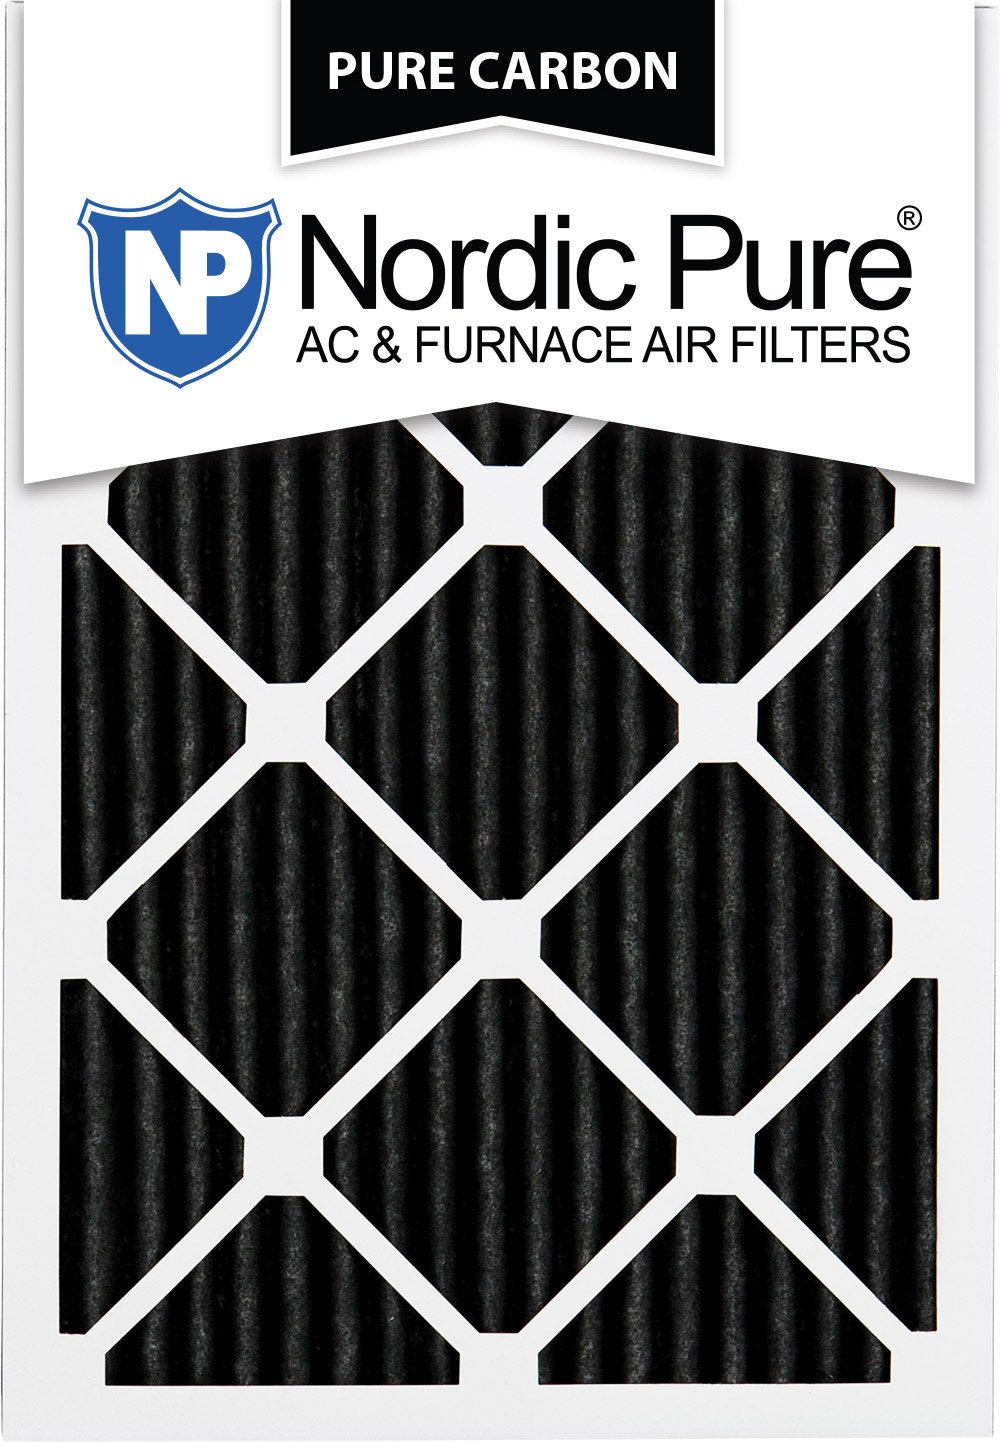 Nordic Pure 20x24x1PCP-3 20x24x1 Pure Carbon Pleated Ac Furnace Filters Qty 3